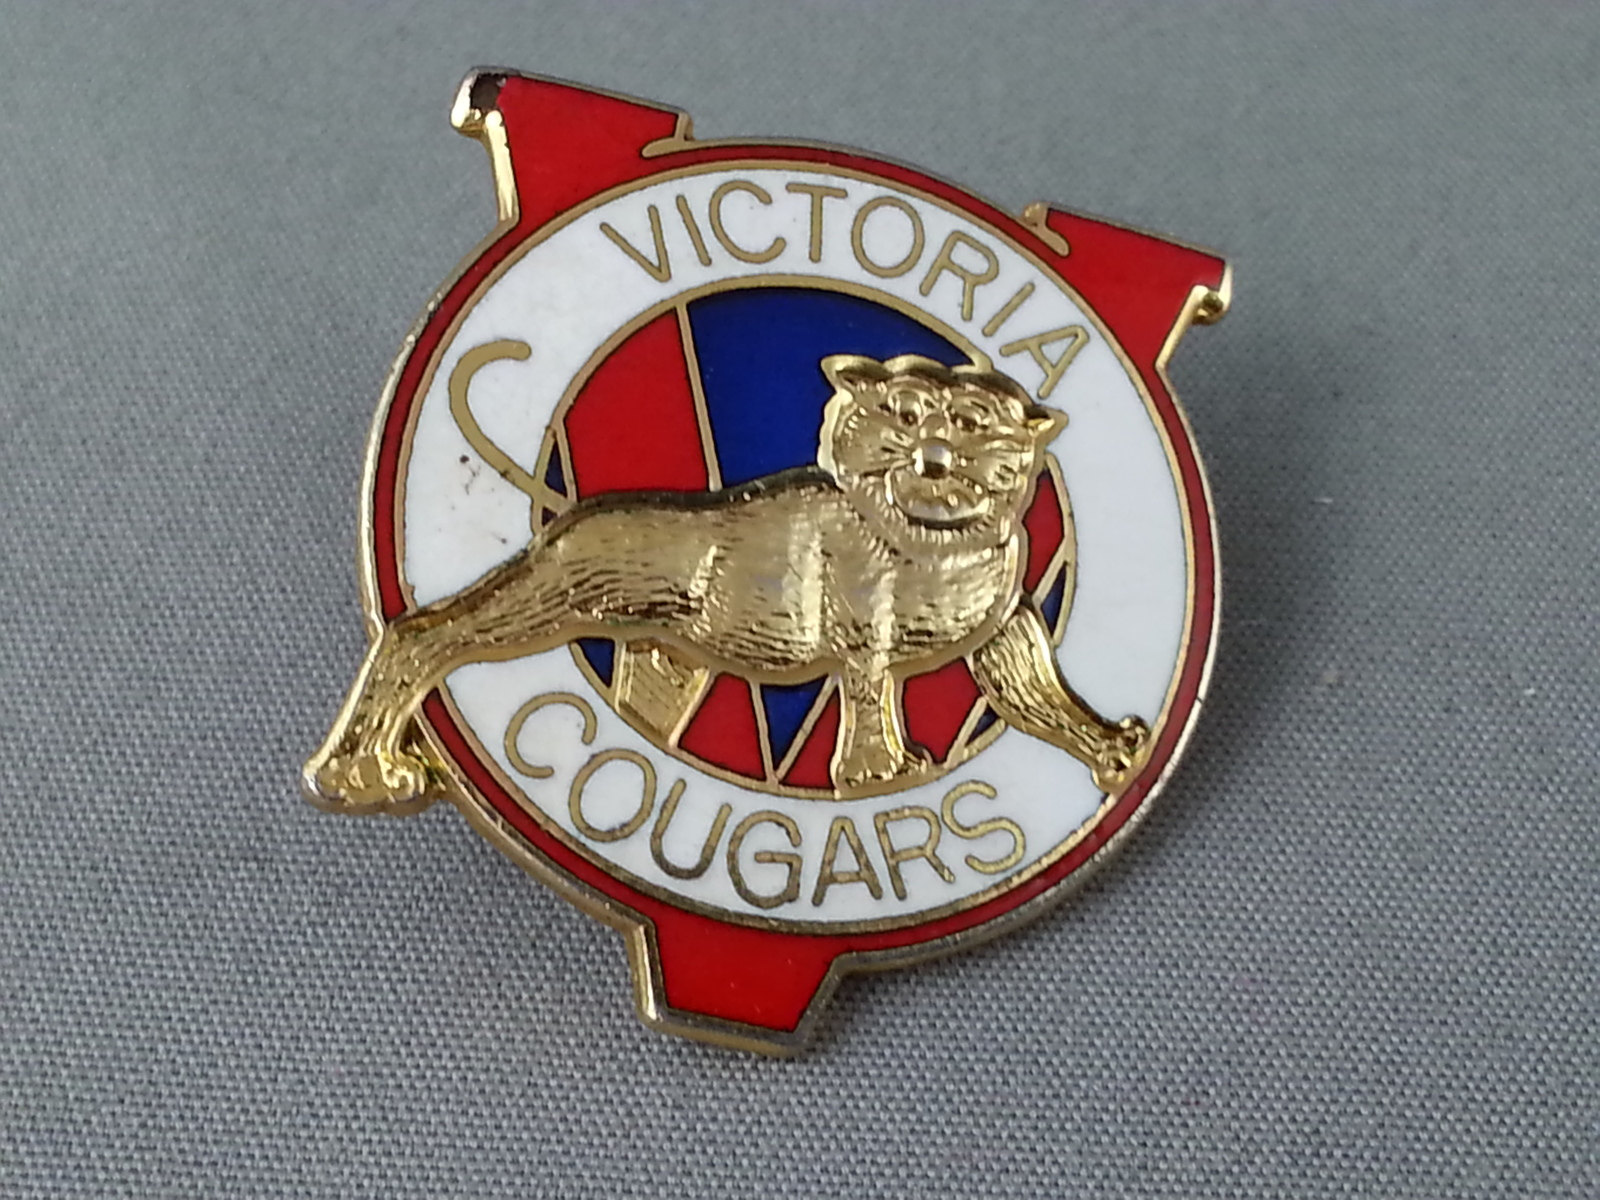 Primary image for Rare - Victoria Cougars Pin - Western Hockey League - From 1987